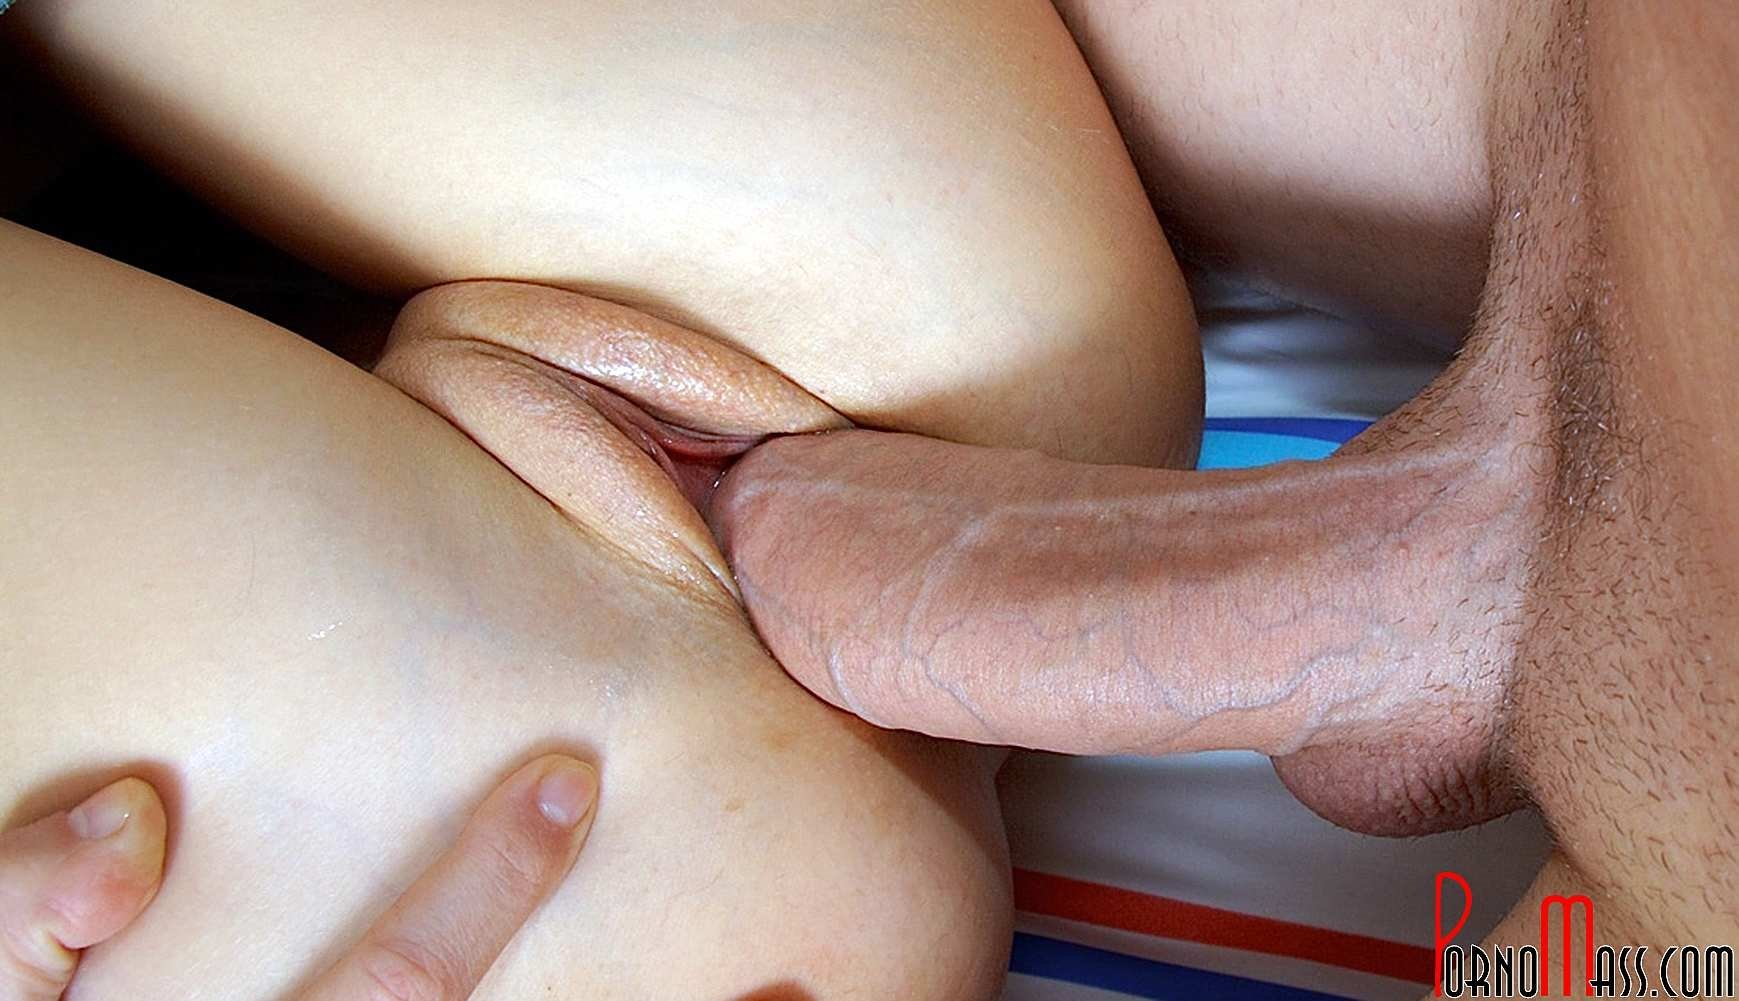 Slow and fast fuck of creamy pussy up close